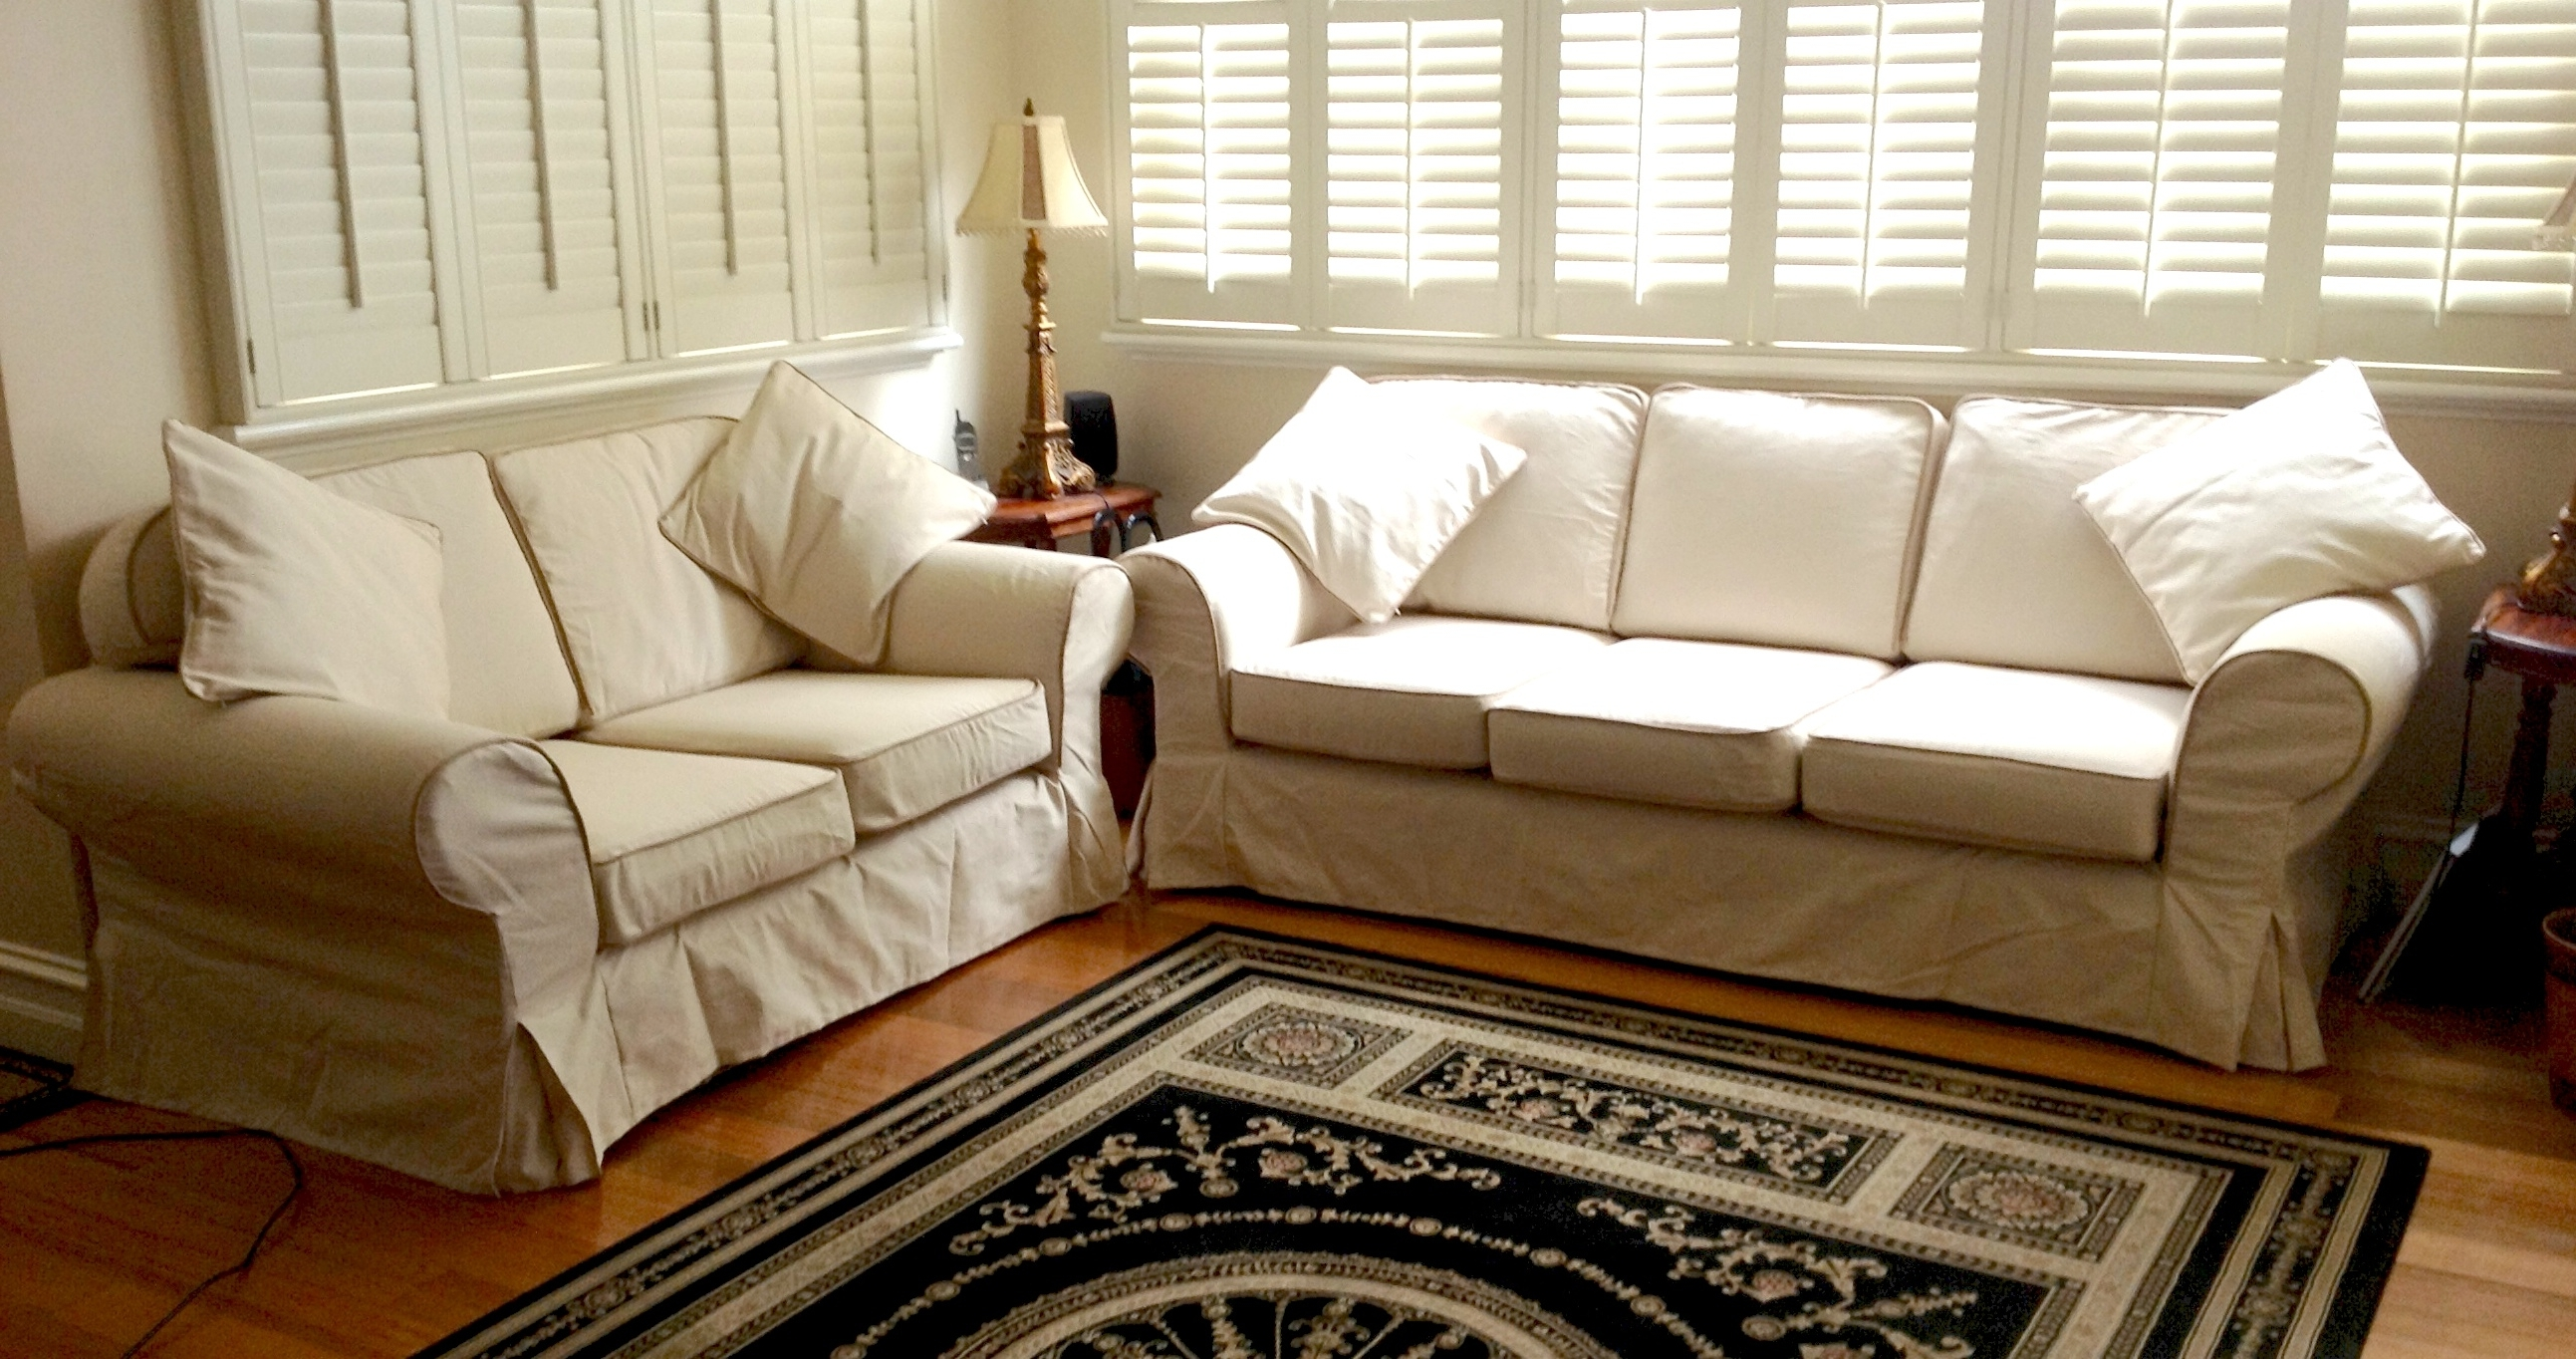 Slipcovers Sofas With Widely Used Slipcovers And Couch Cover For Any Sofa Online (View 9 of 15)